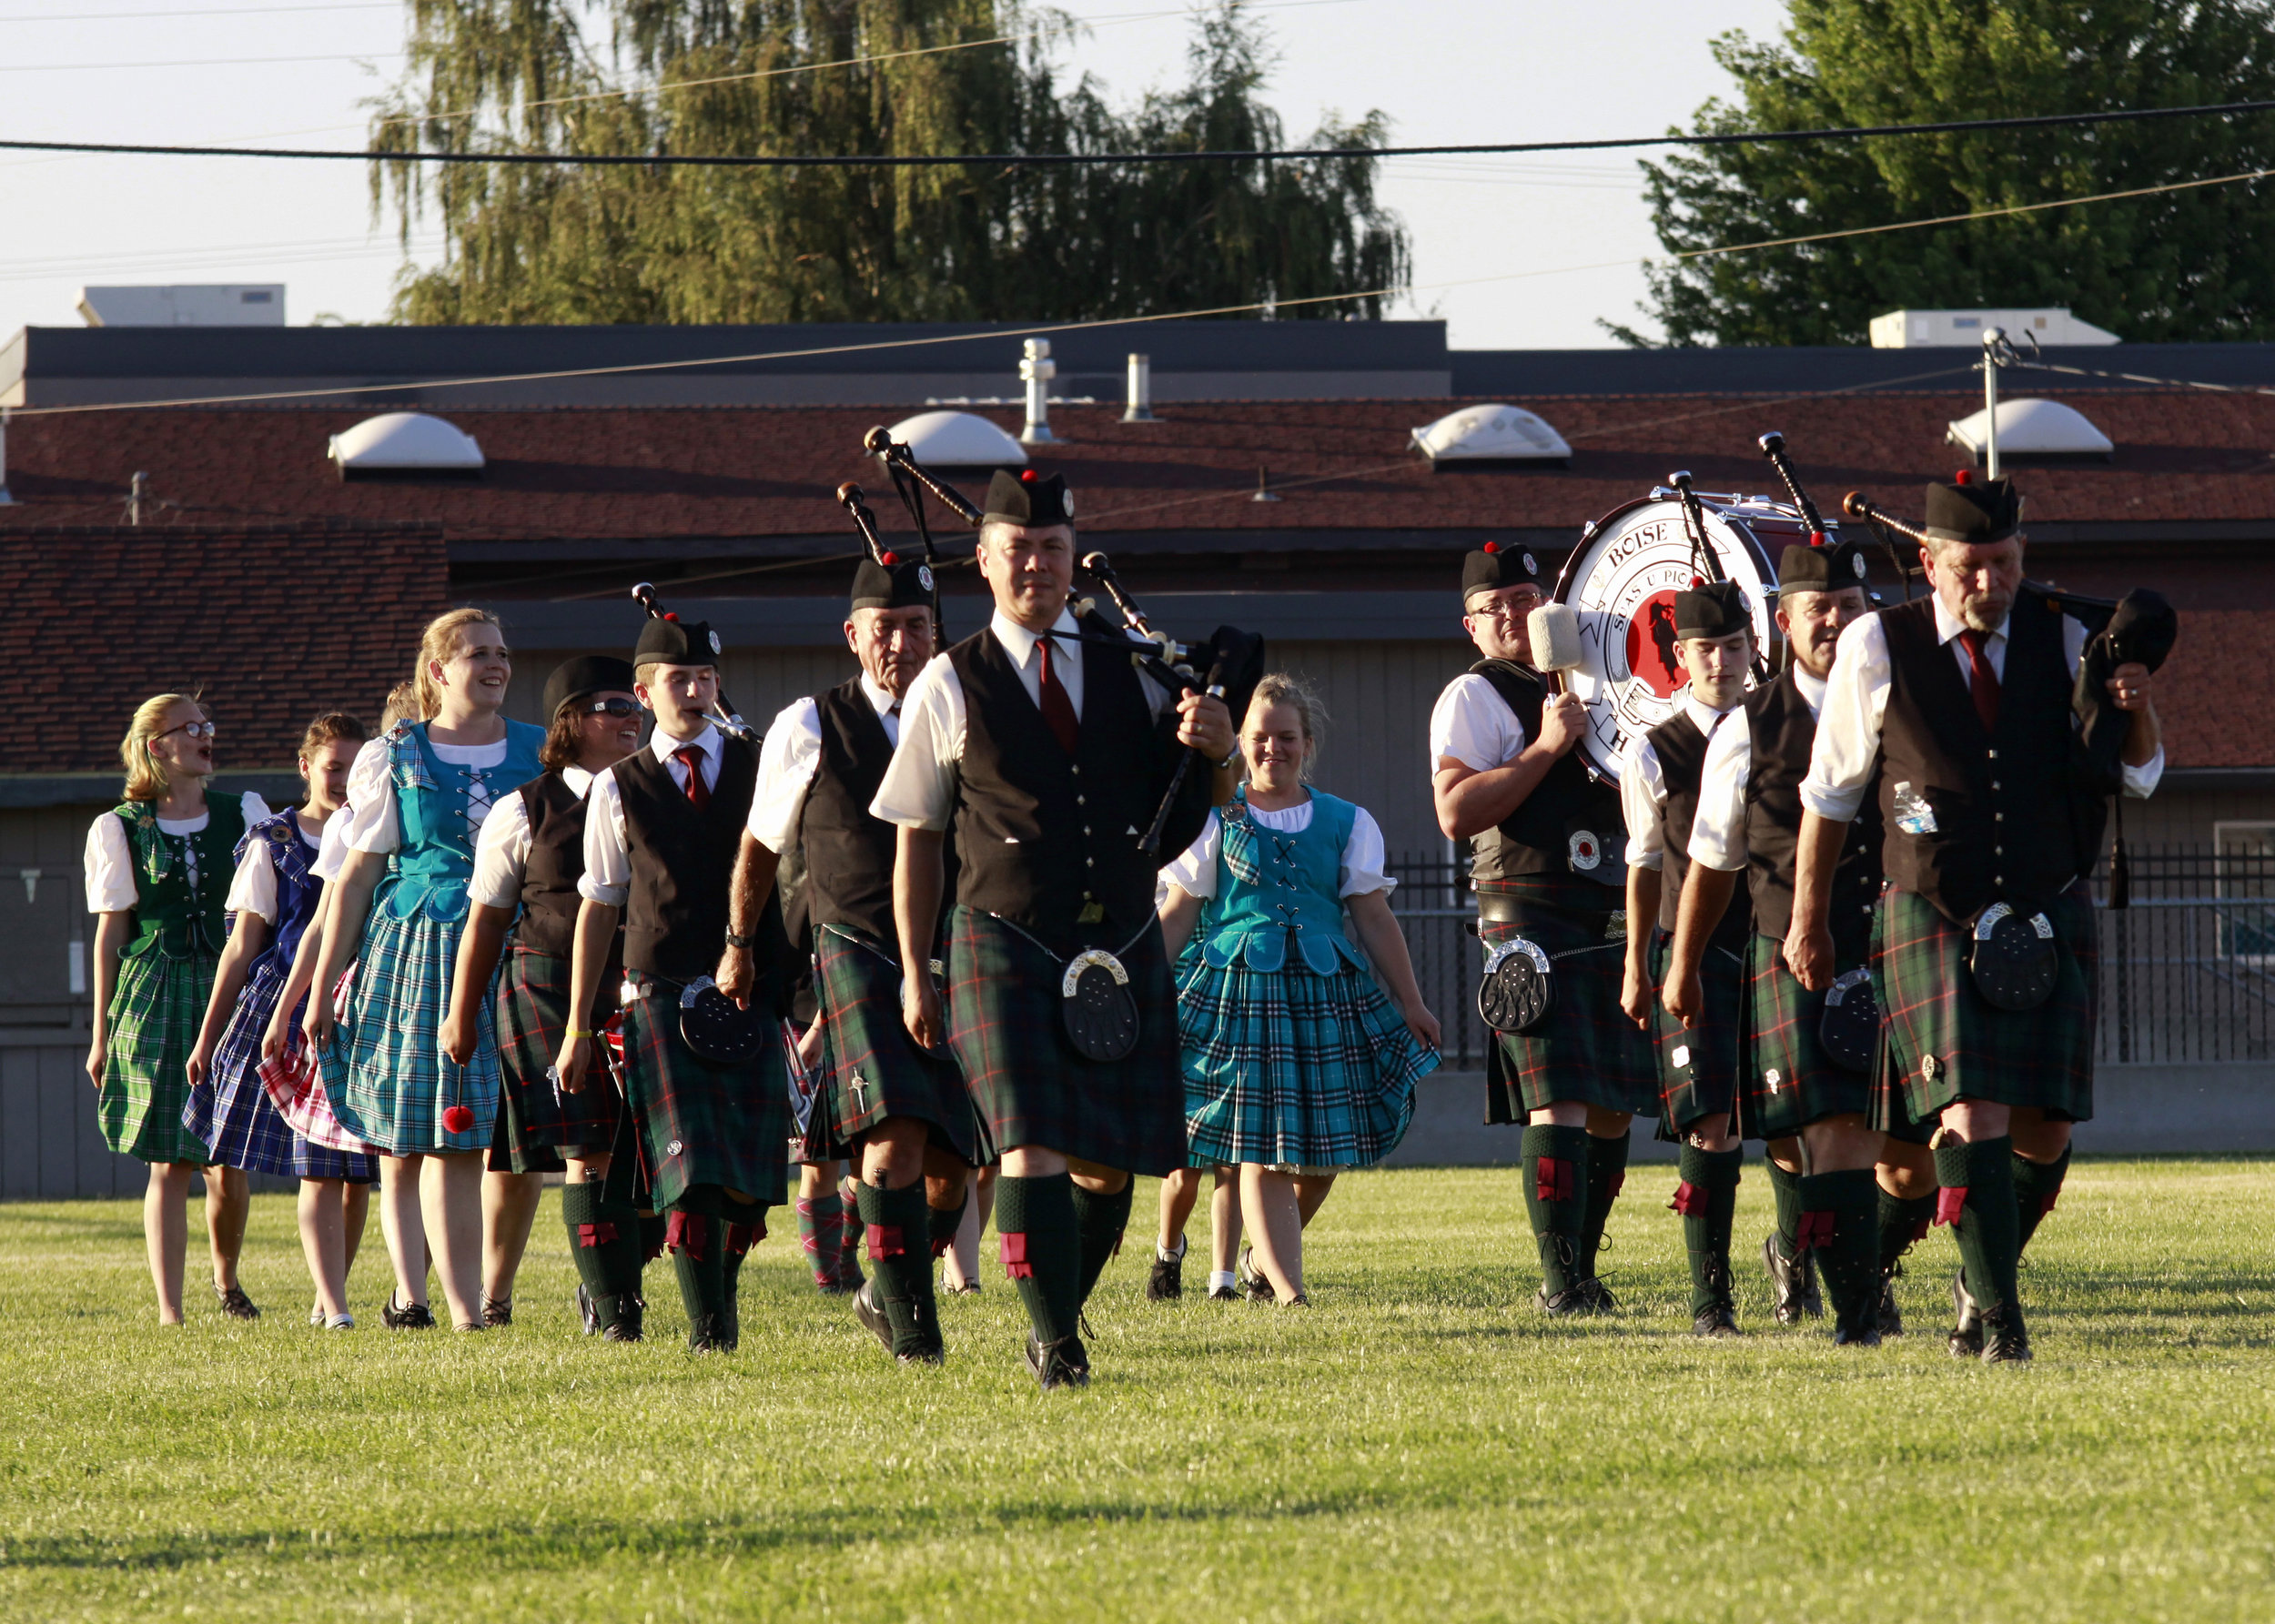 Caledonian_2018_Pipes and Dancers.jpg